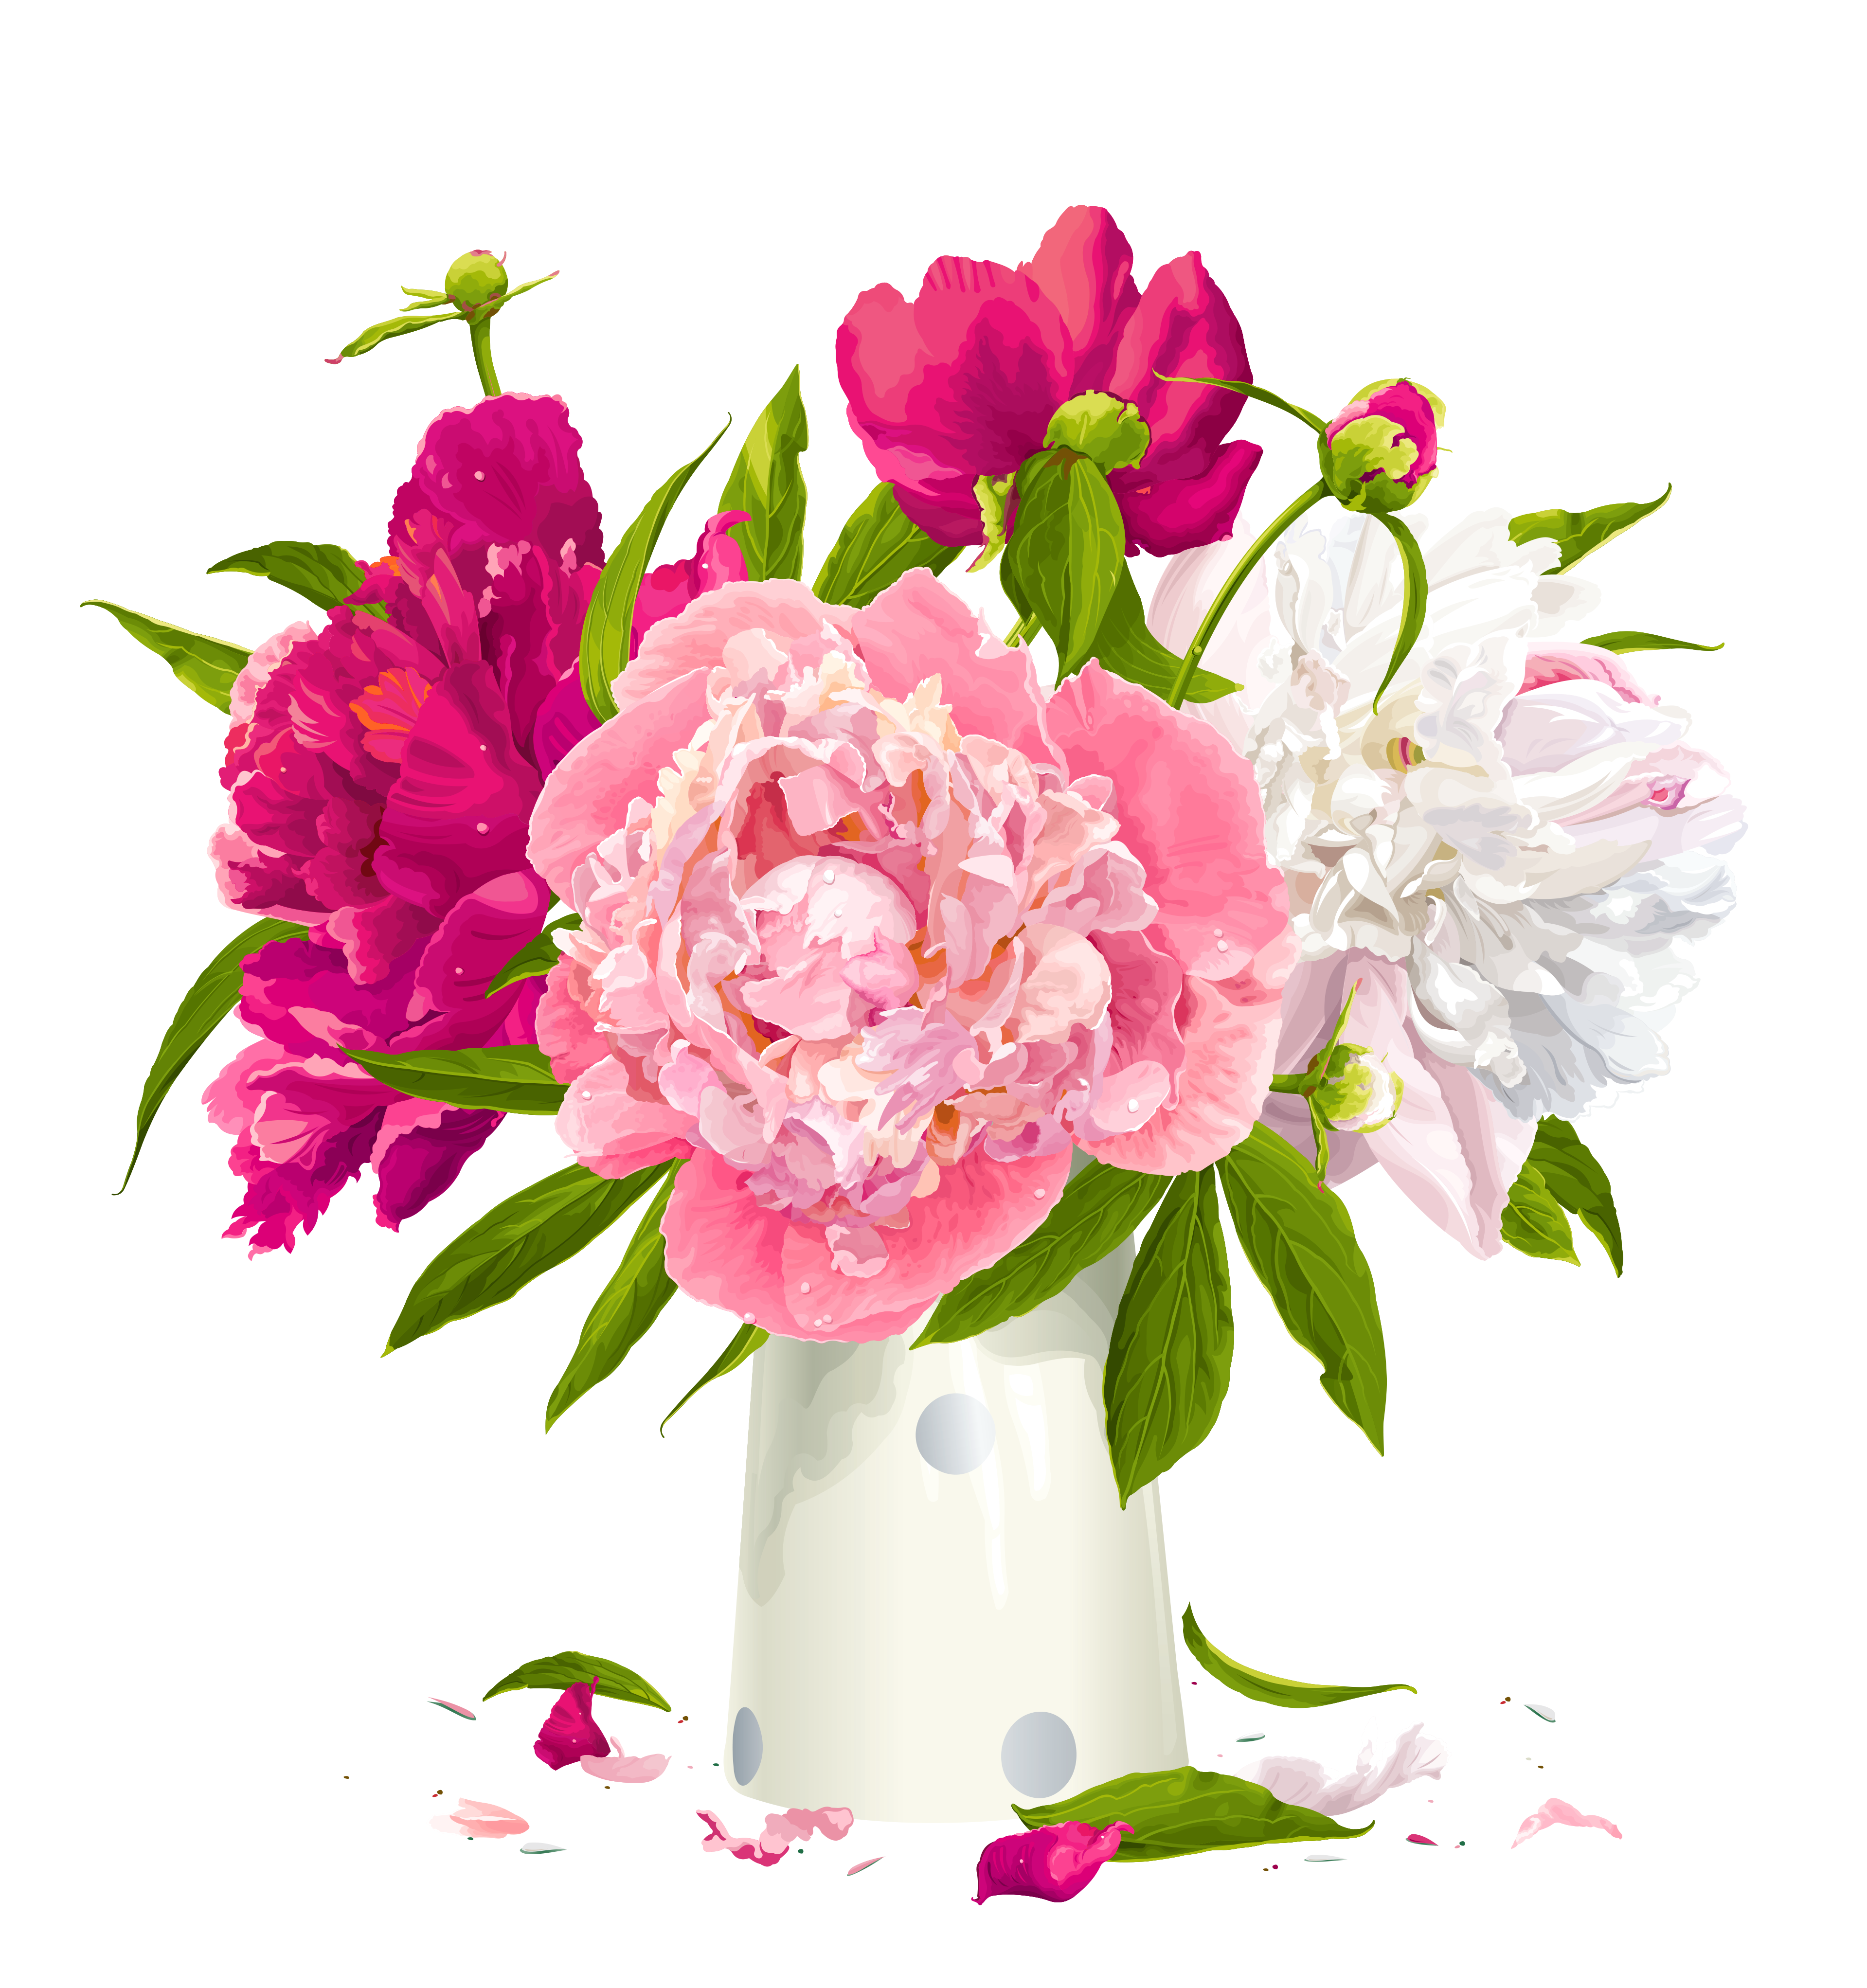 Vase with peonies gallery. Daisies clipart four flower